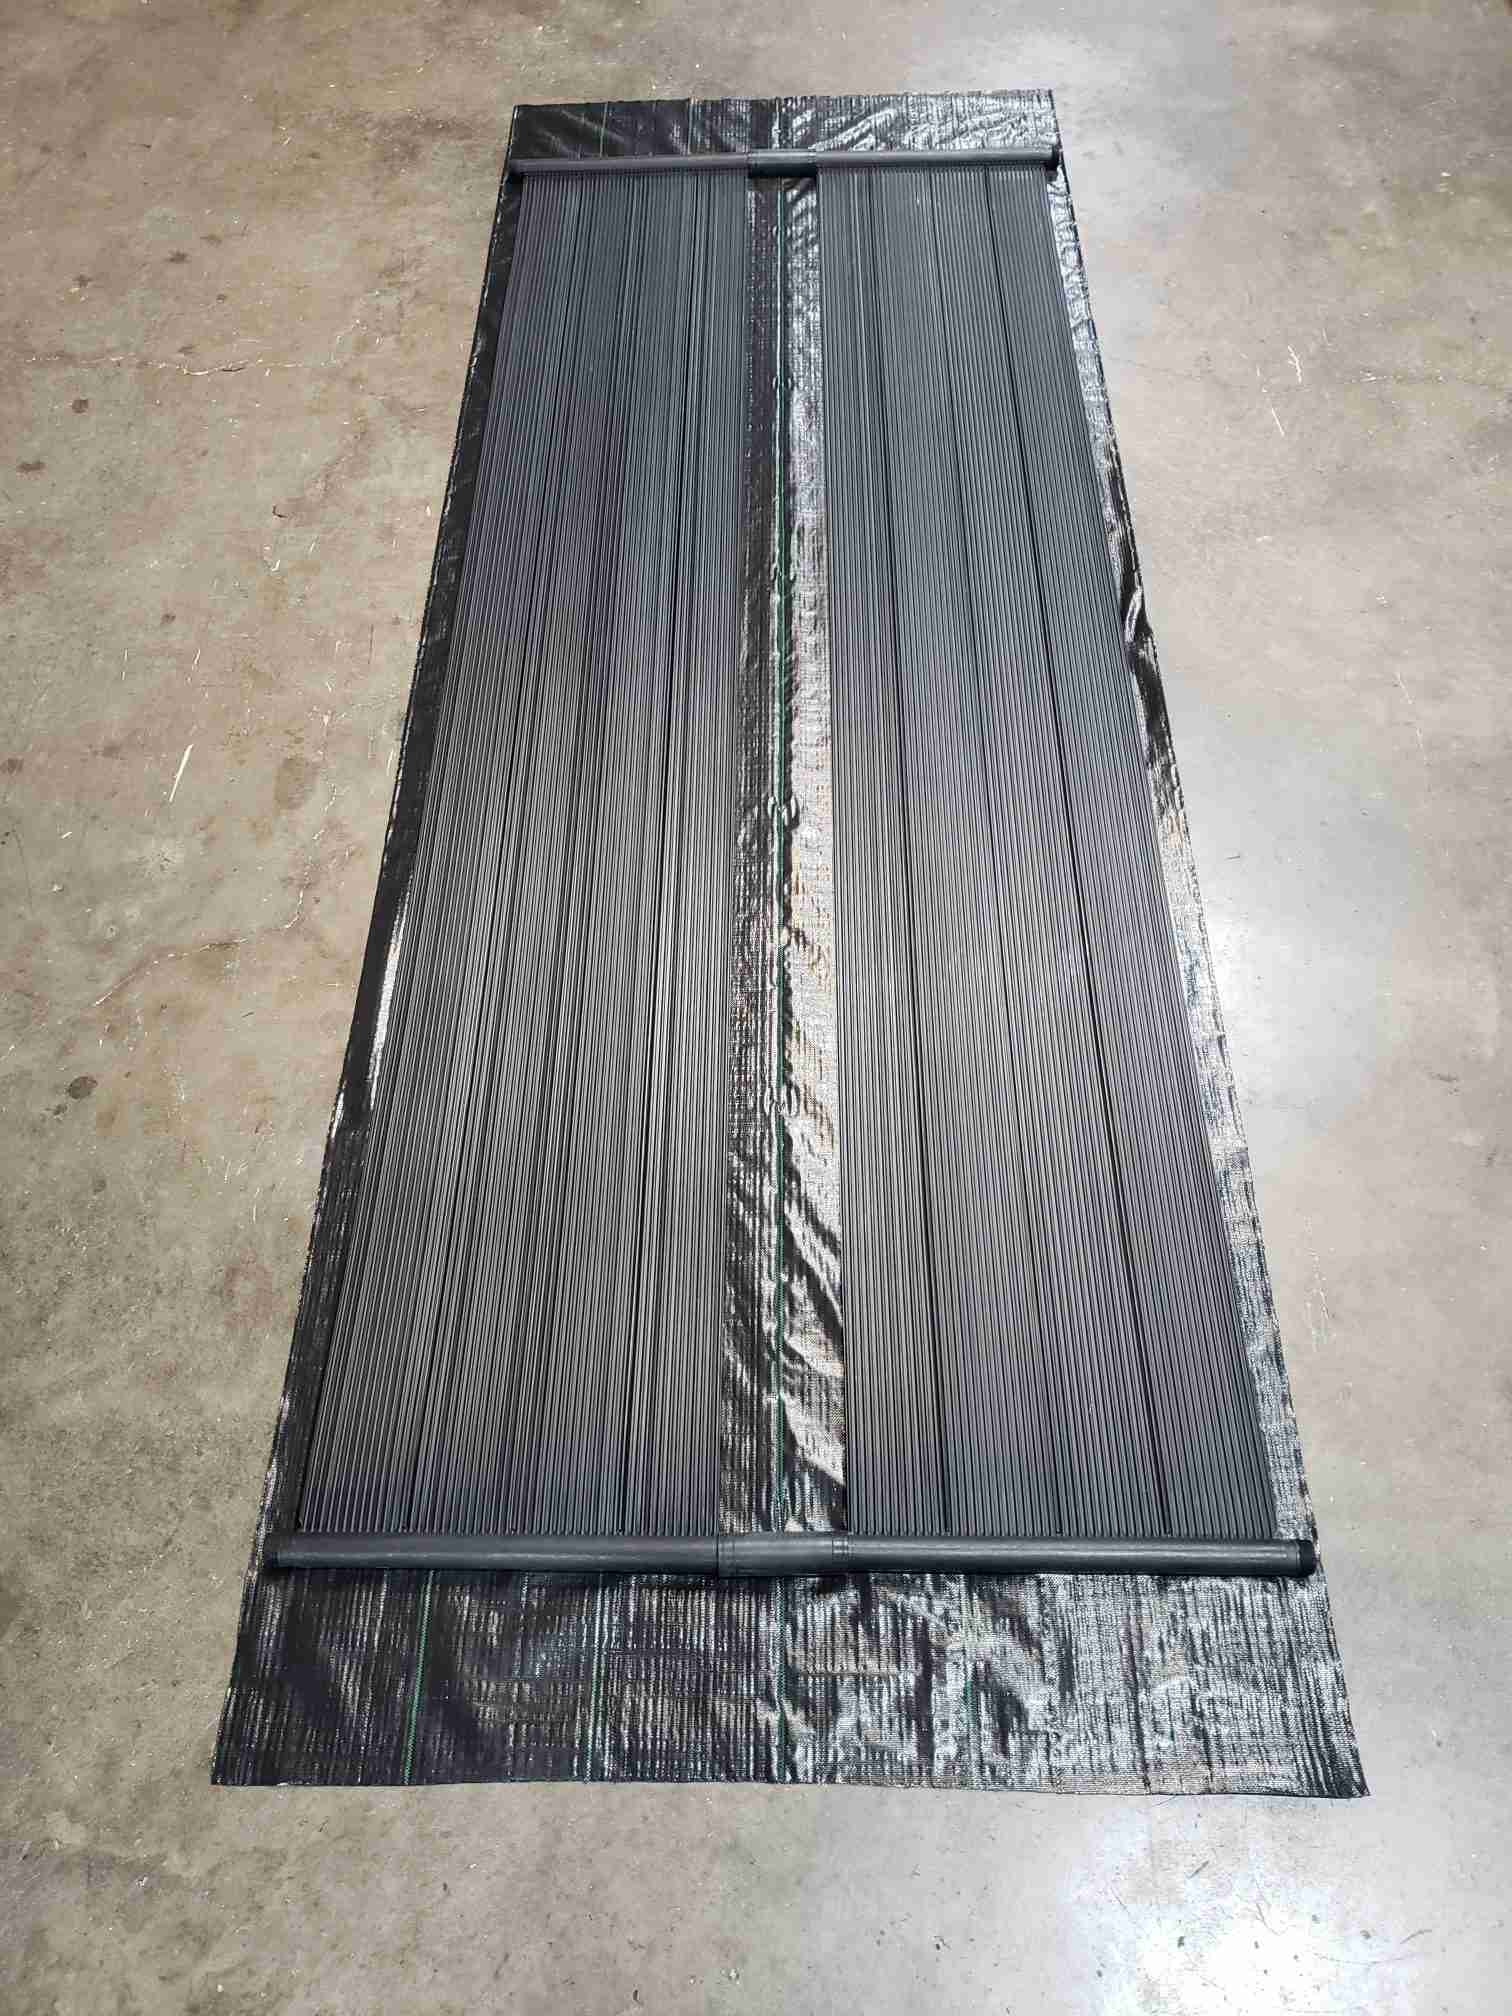 Underlayment weed barrier with panels